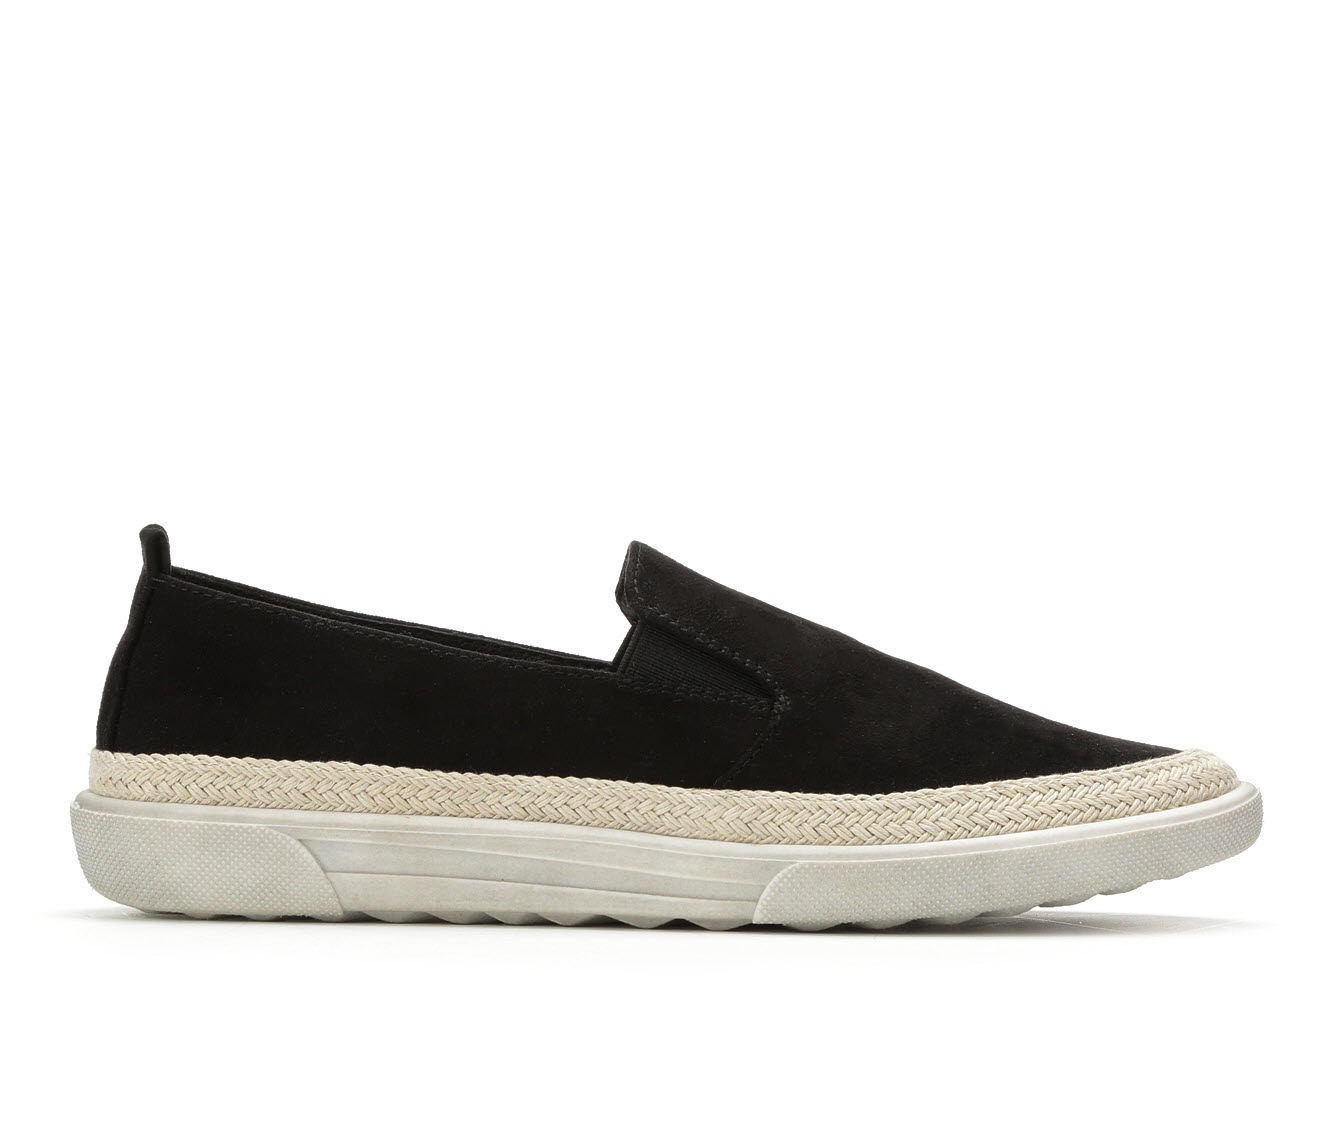 collections sale online outlet limited edition Women's Vintage 7 Eight Maxwell Slip-On Shoes best sale free shipping cheap quality clearance manchester great sale SPk58FW